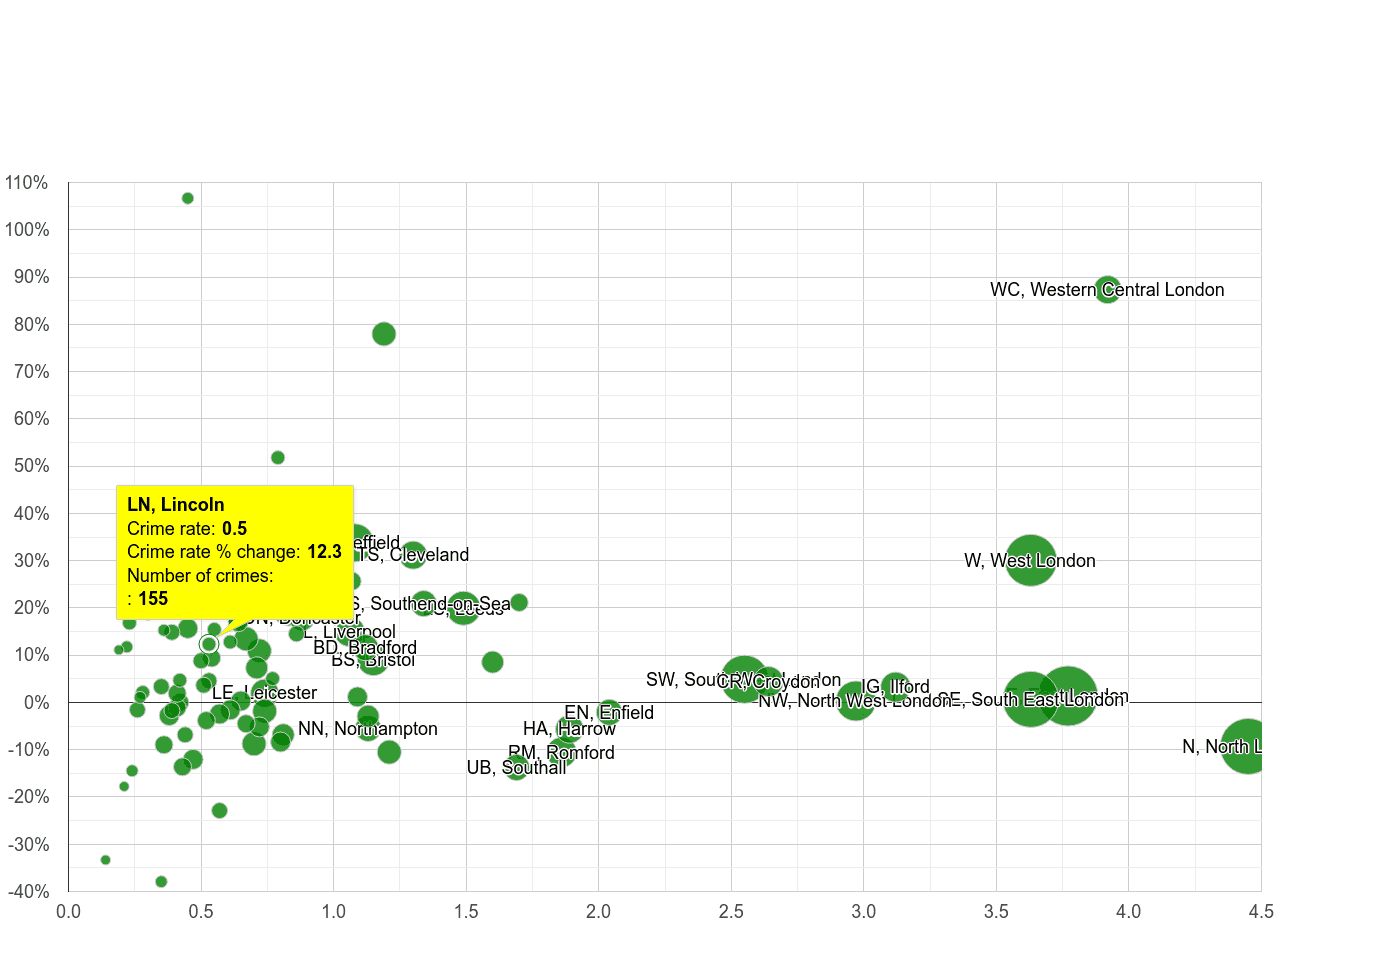 Lincoln robbery crime rate compared to other areas